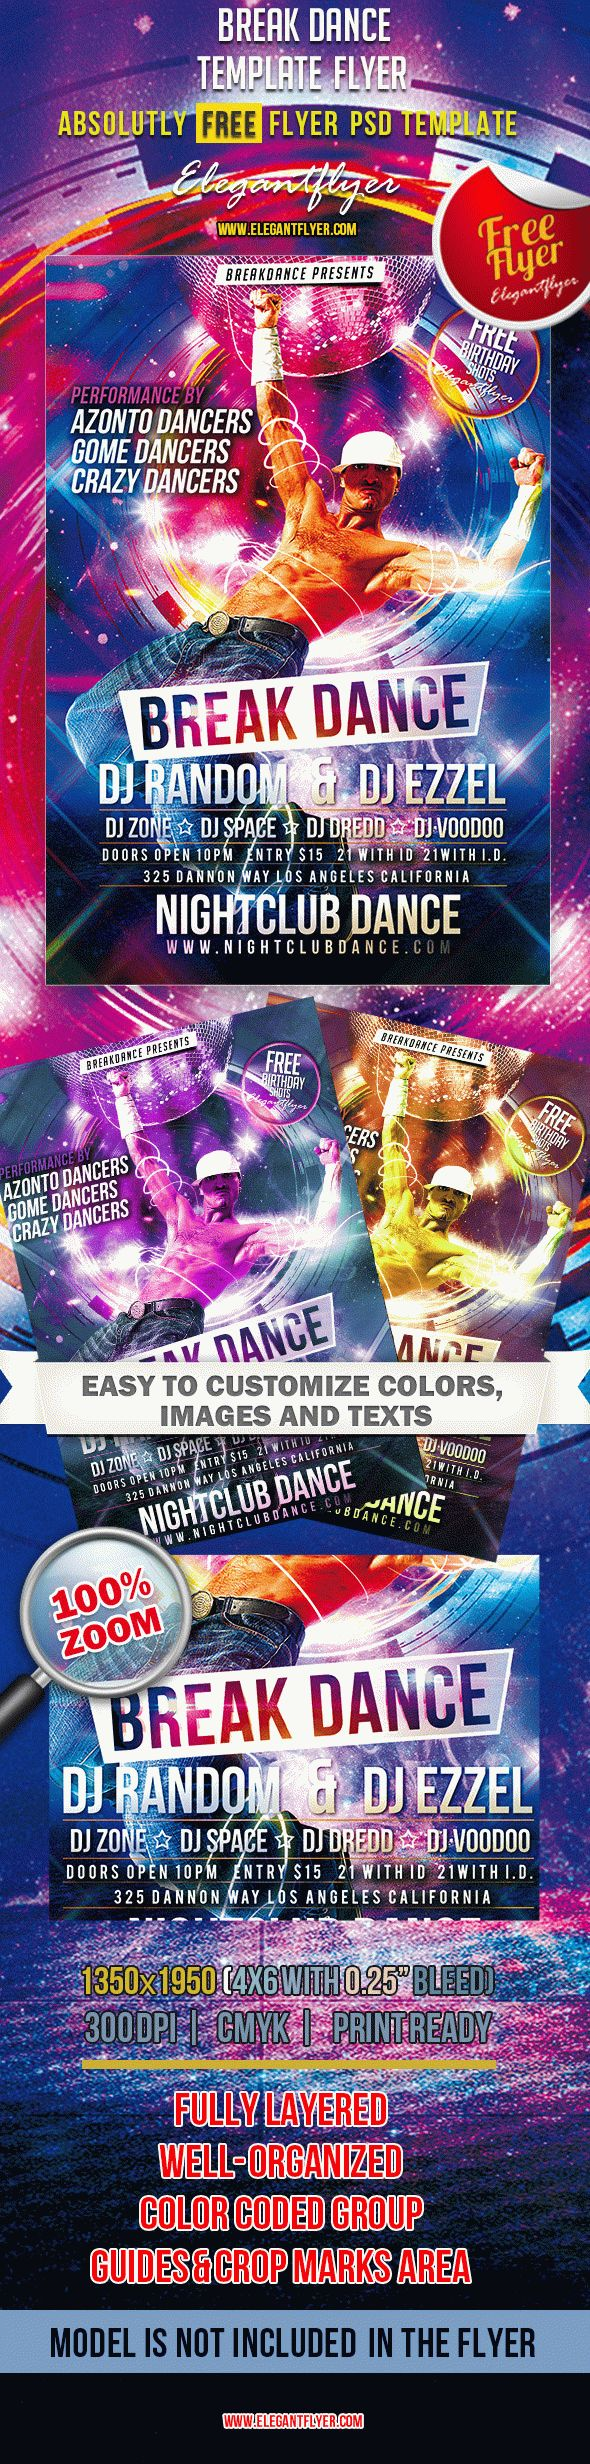 break dance  u2013 free club and party flyer psd template  u2013 by